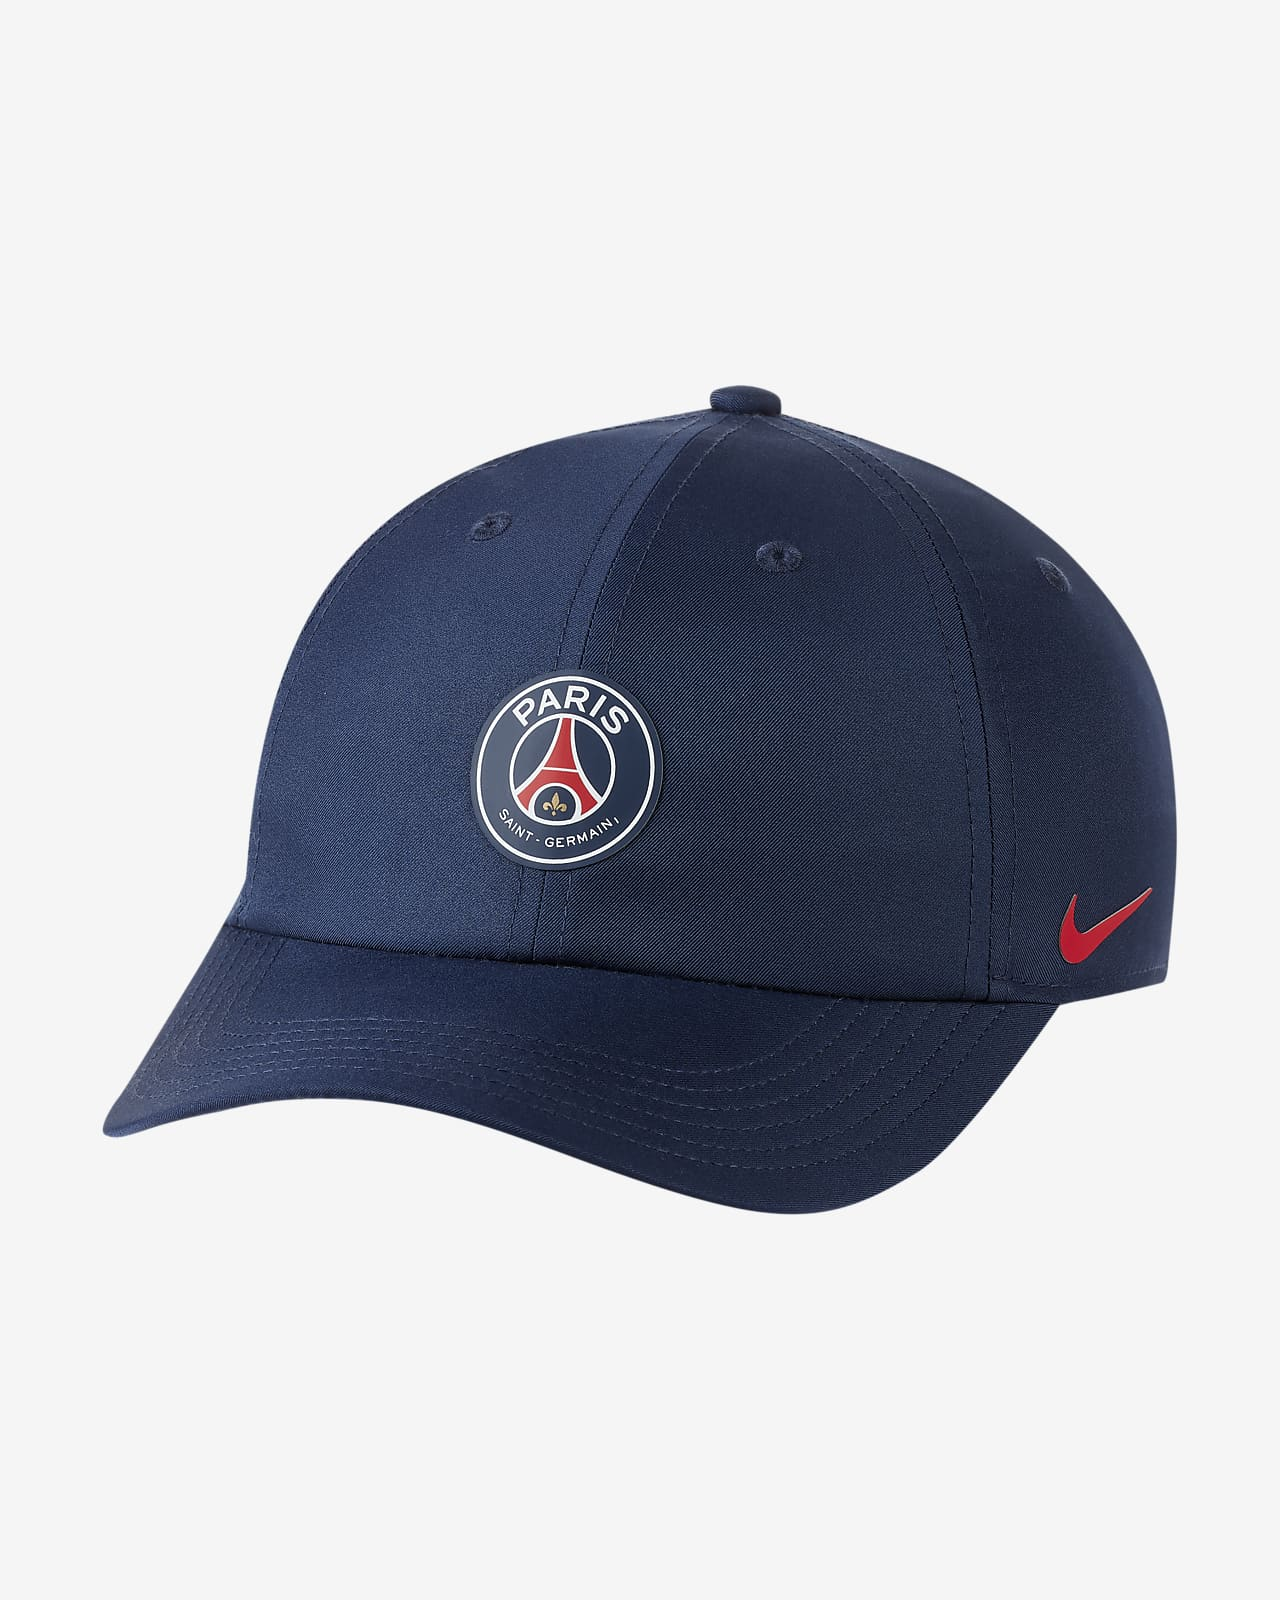 Nike Dri-FIT Paris Saint-Germain Heritage86 verstellbare Cap für Kinder